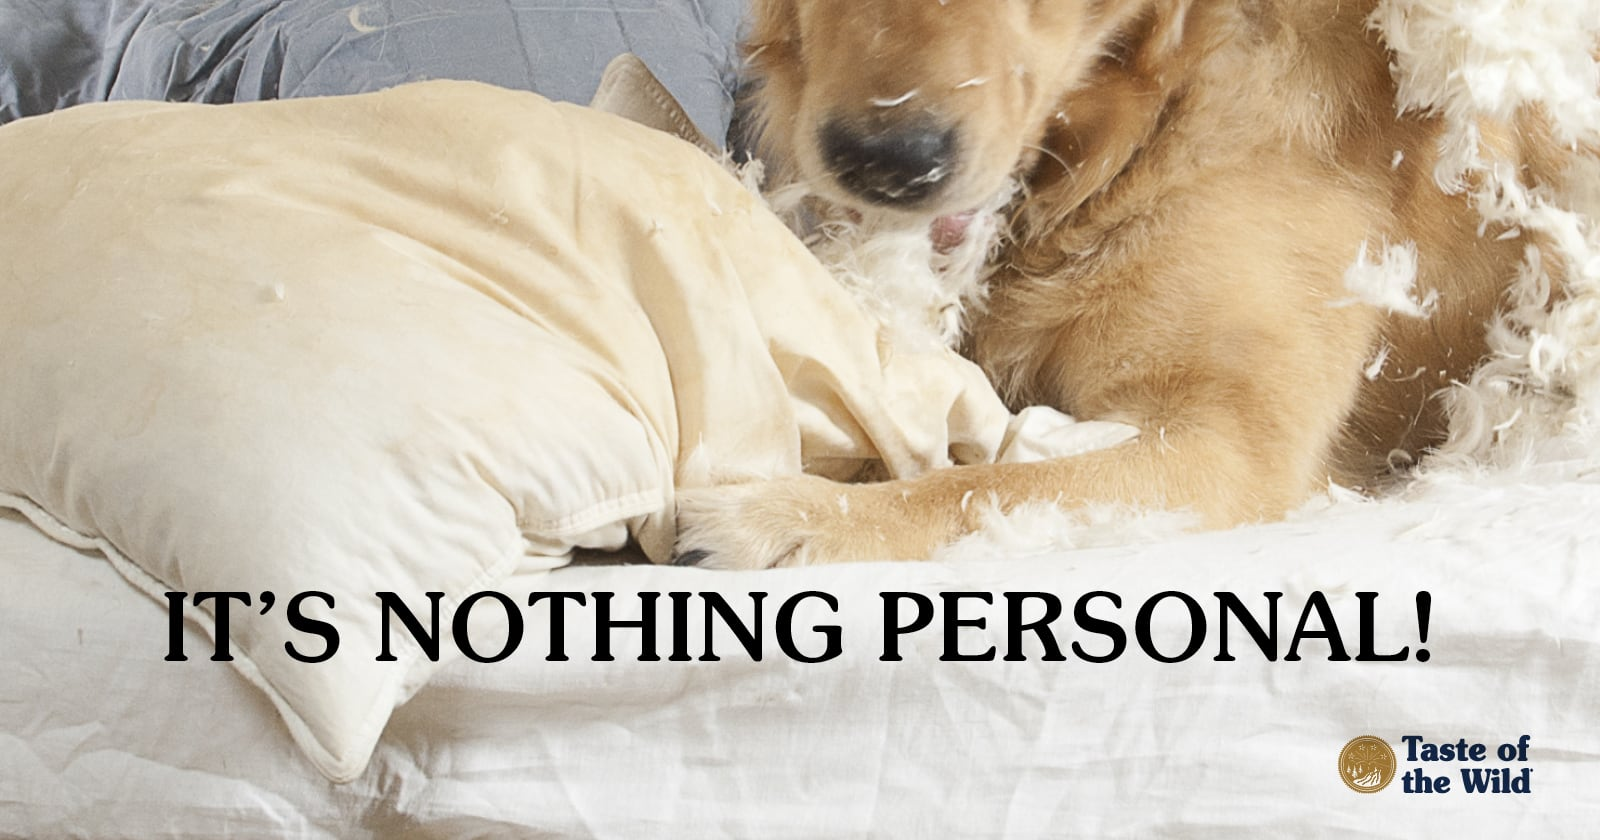 Golden Retriever dog tearing up pillow